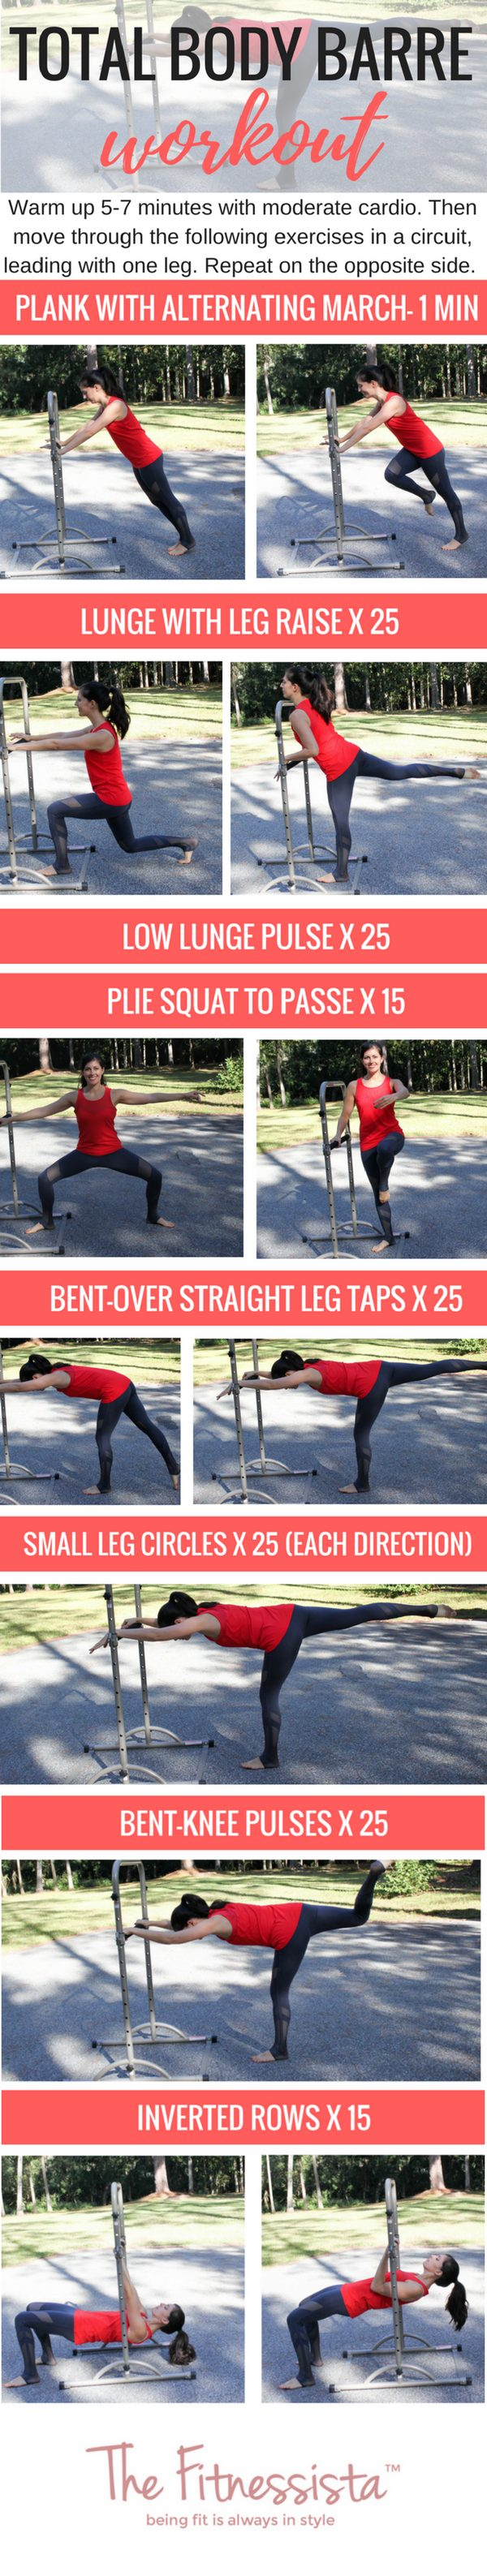 A total body barre workout you can do anywhere! fitnessista.com